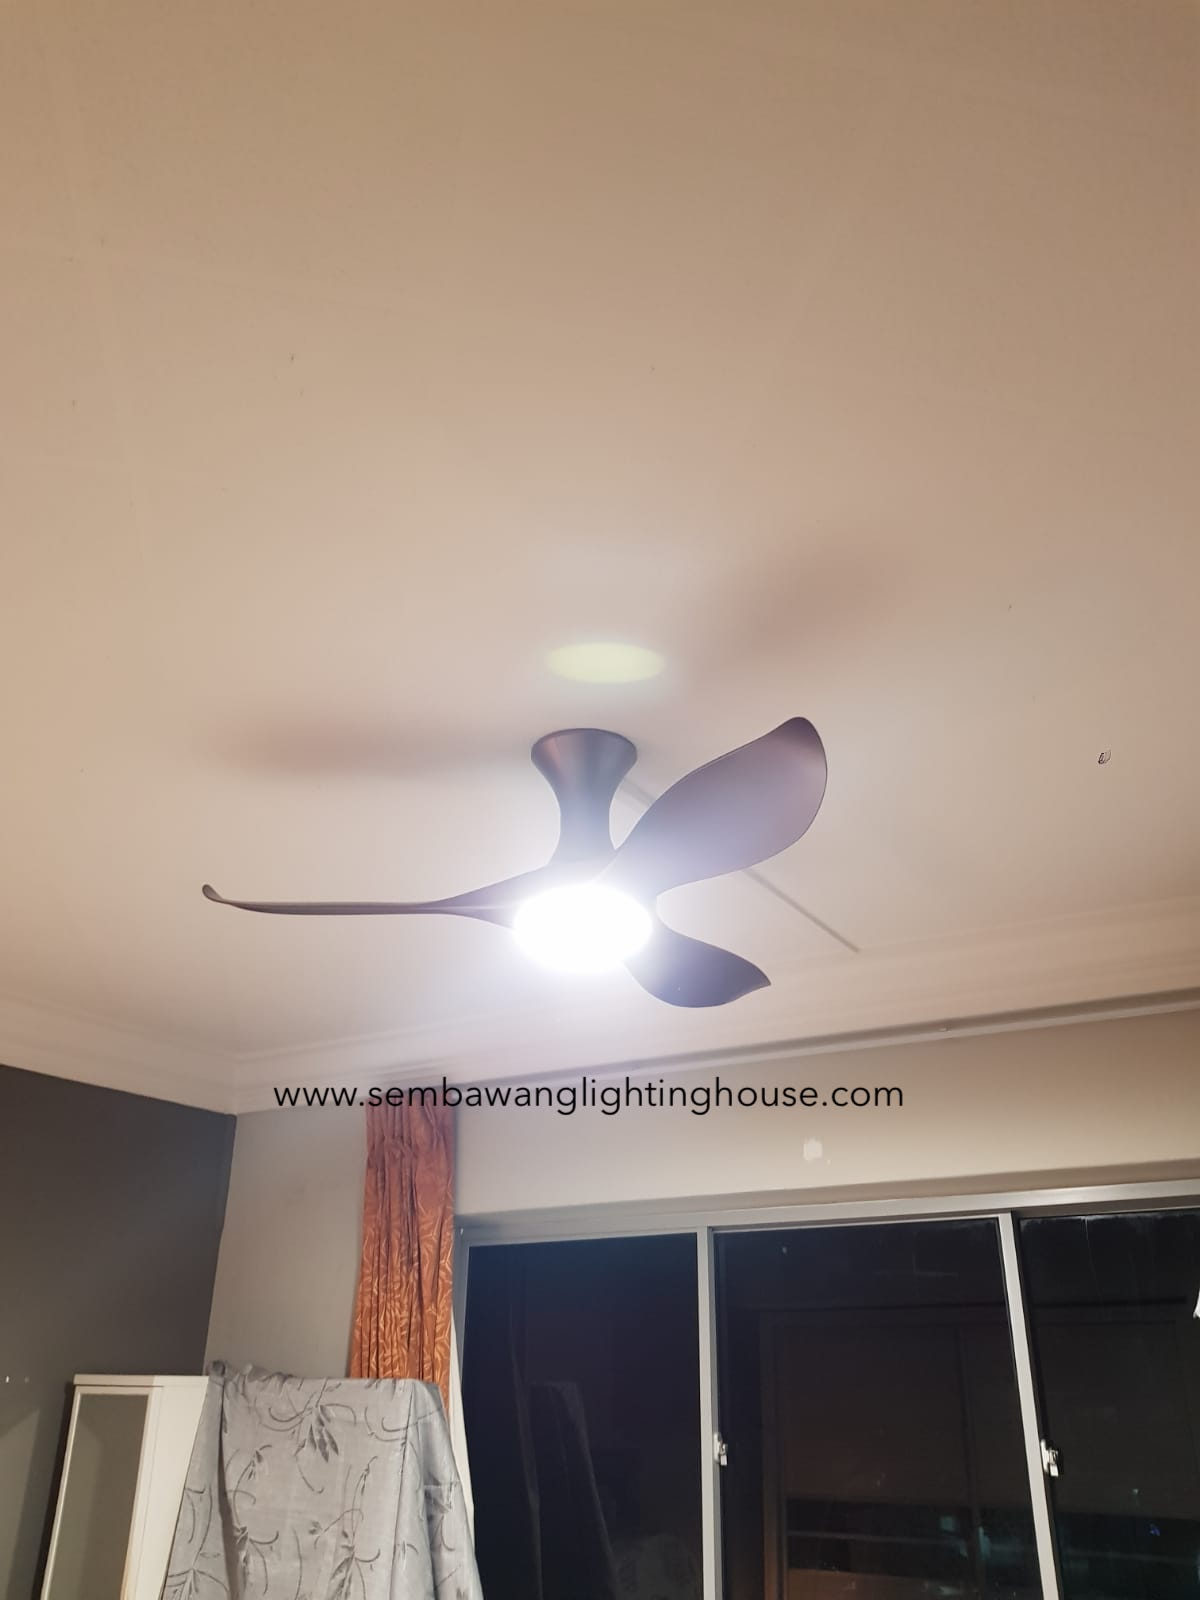 efenz-hugger-ceiling-fan-with-light-midnight-titanium-01.jpg